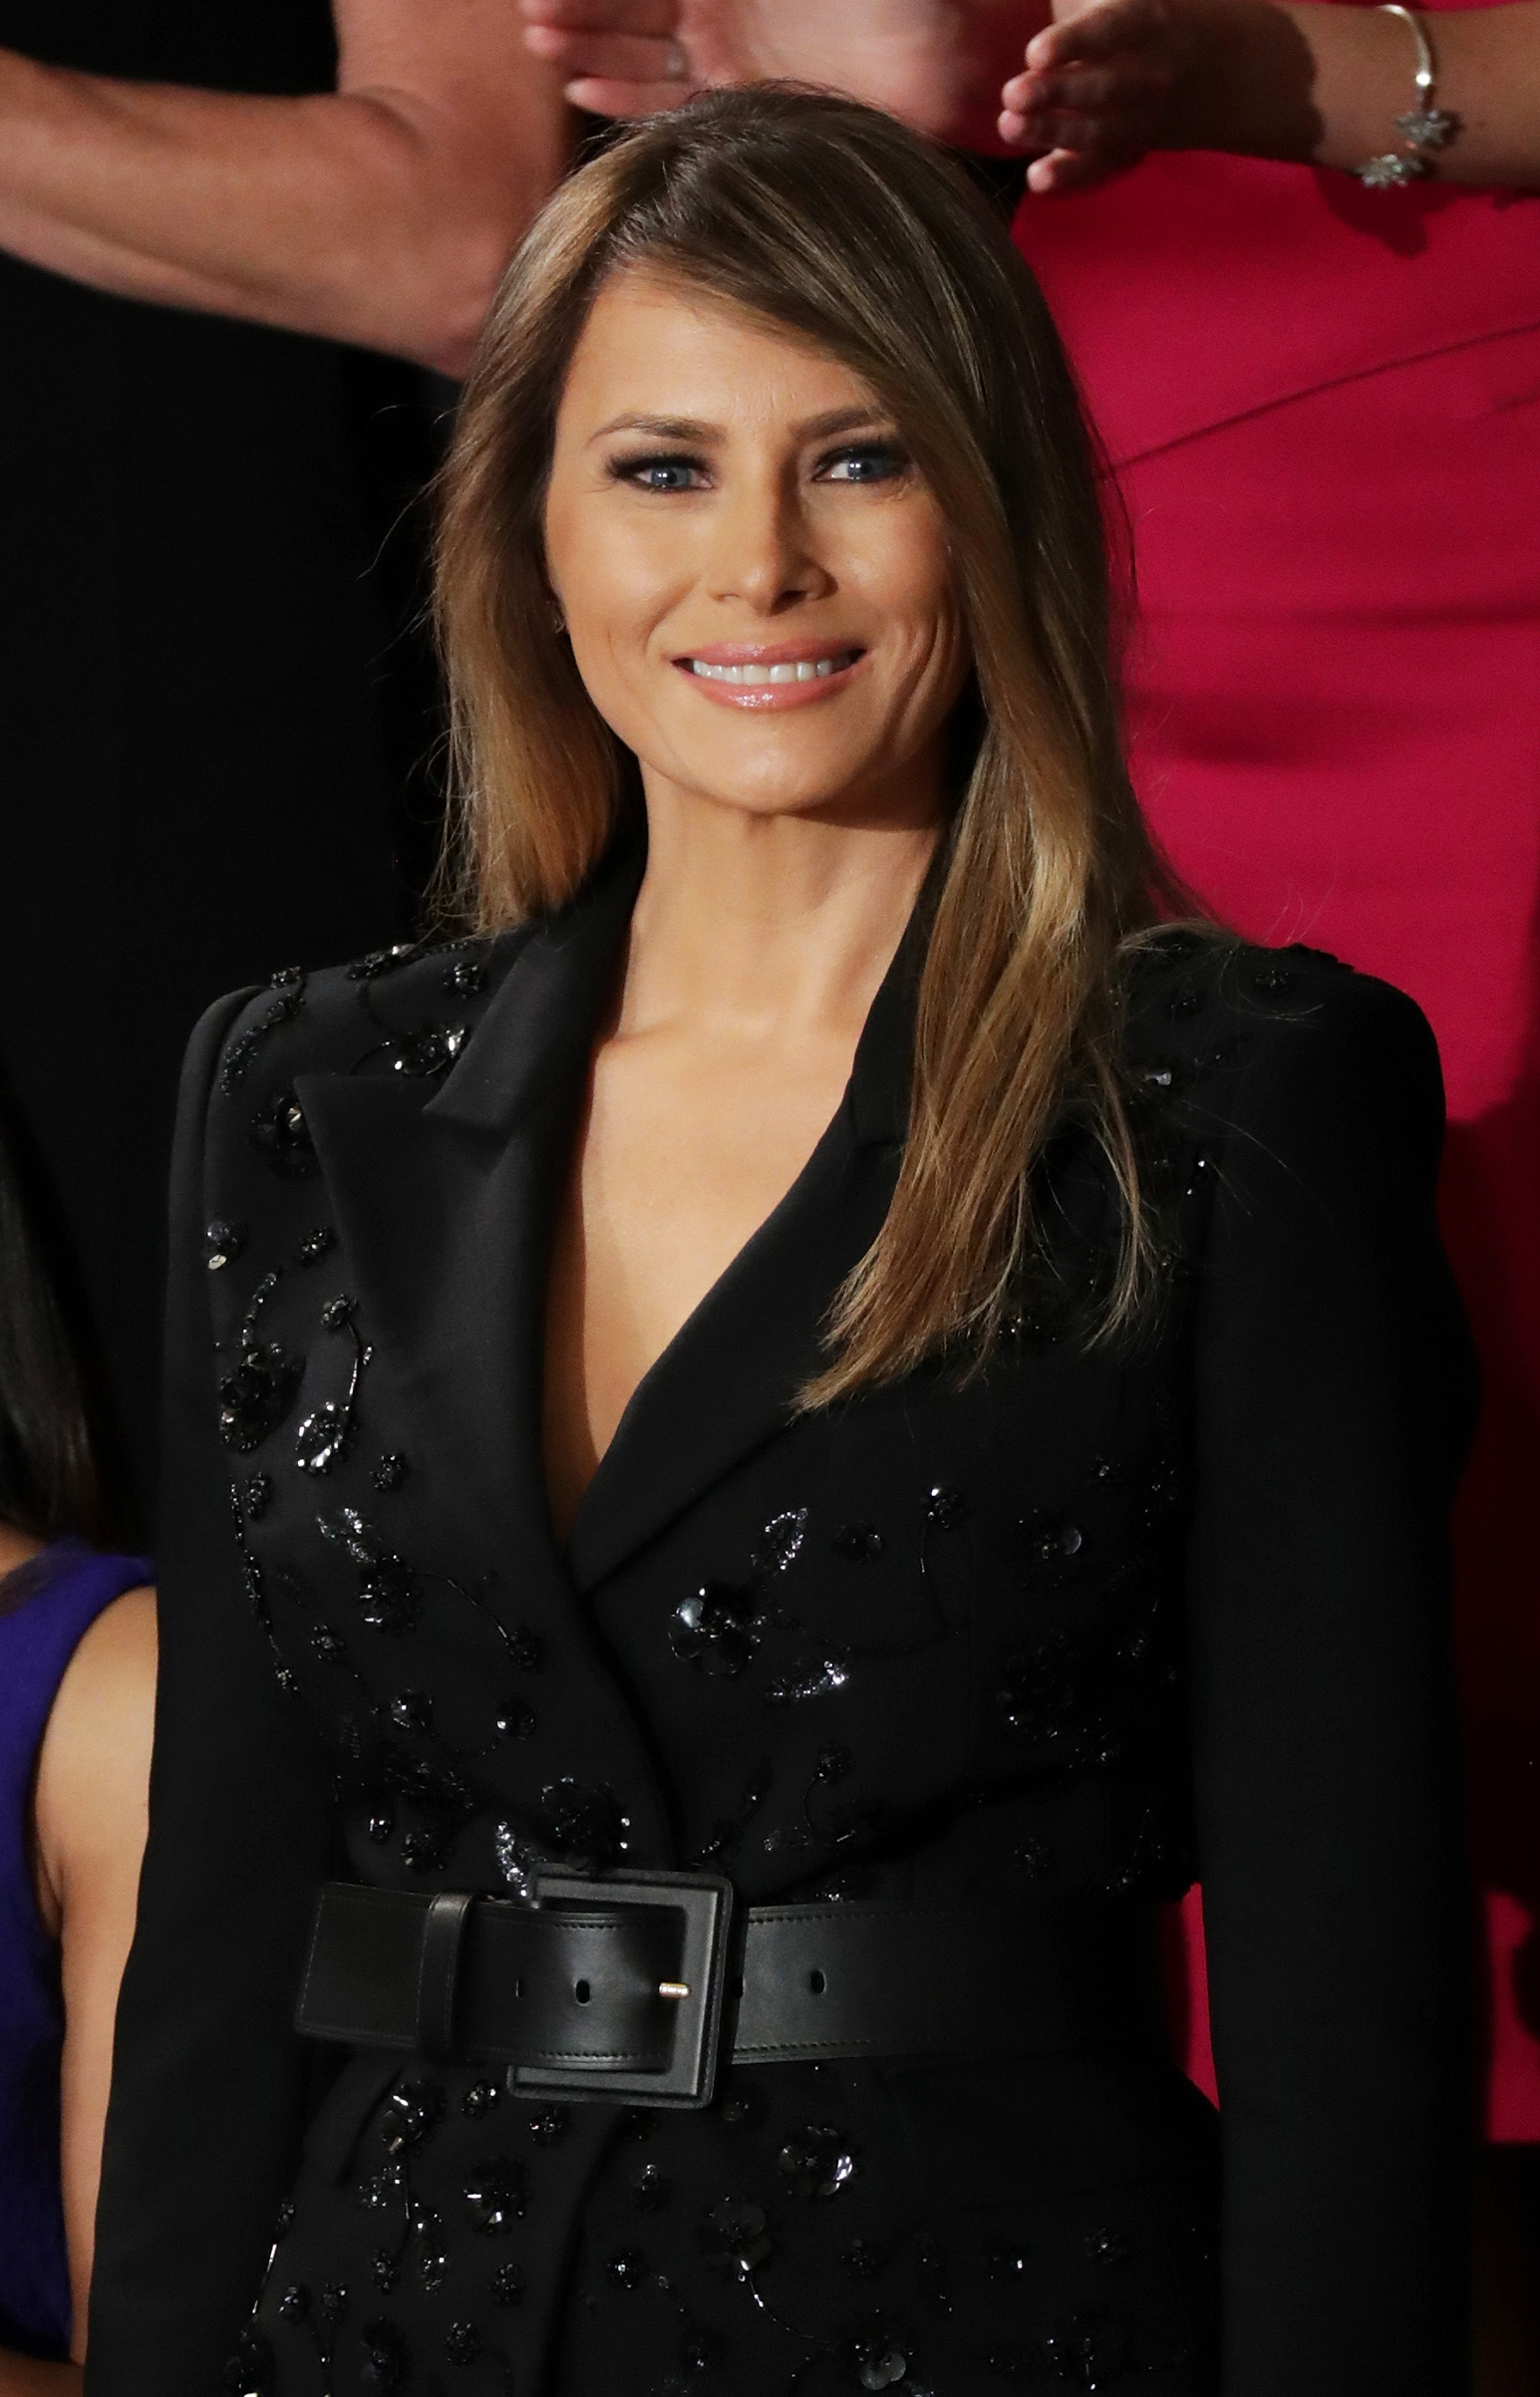 First lady Melania Trump wearing a black embroidered Michael Kors suit with a wide belt,  arrives to a joint session of the U.S. Congress with U.S. President Donald Trump on February 28, 2017 in the House chamber of  the U.S. Capitol in Washington, D.C.